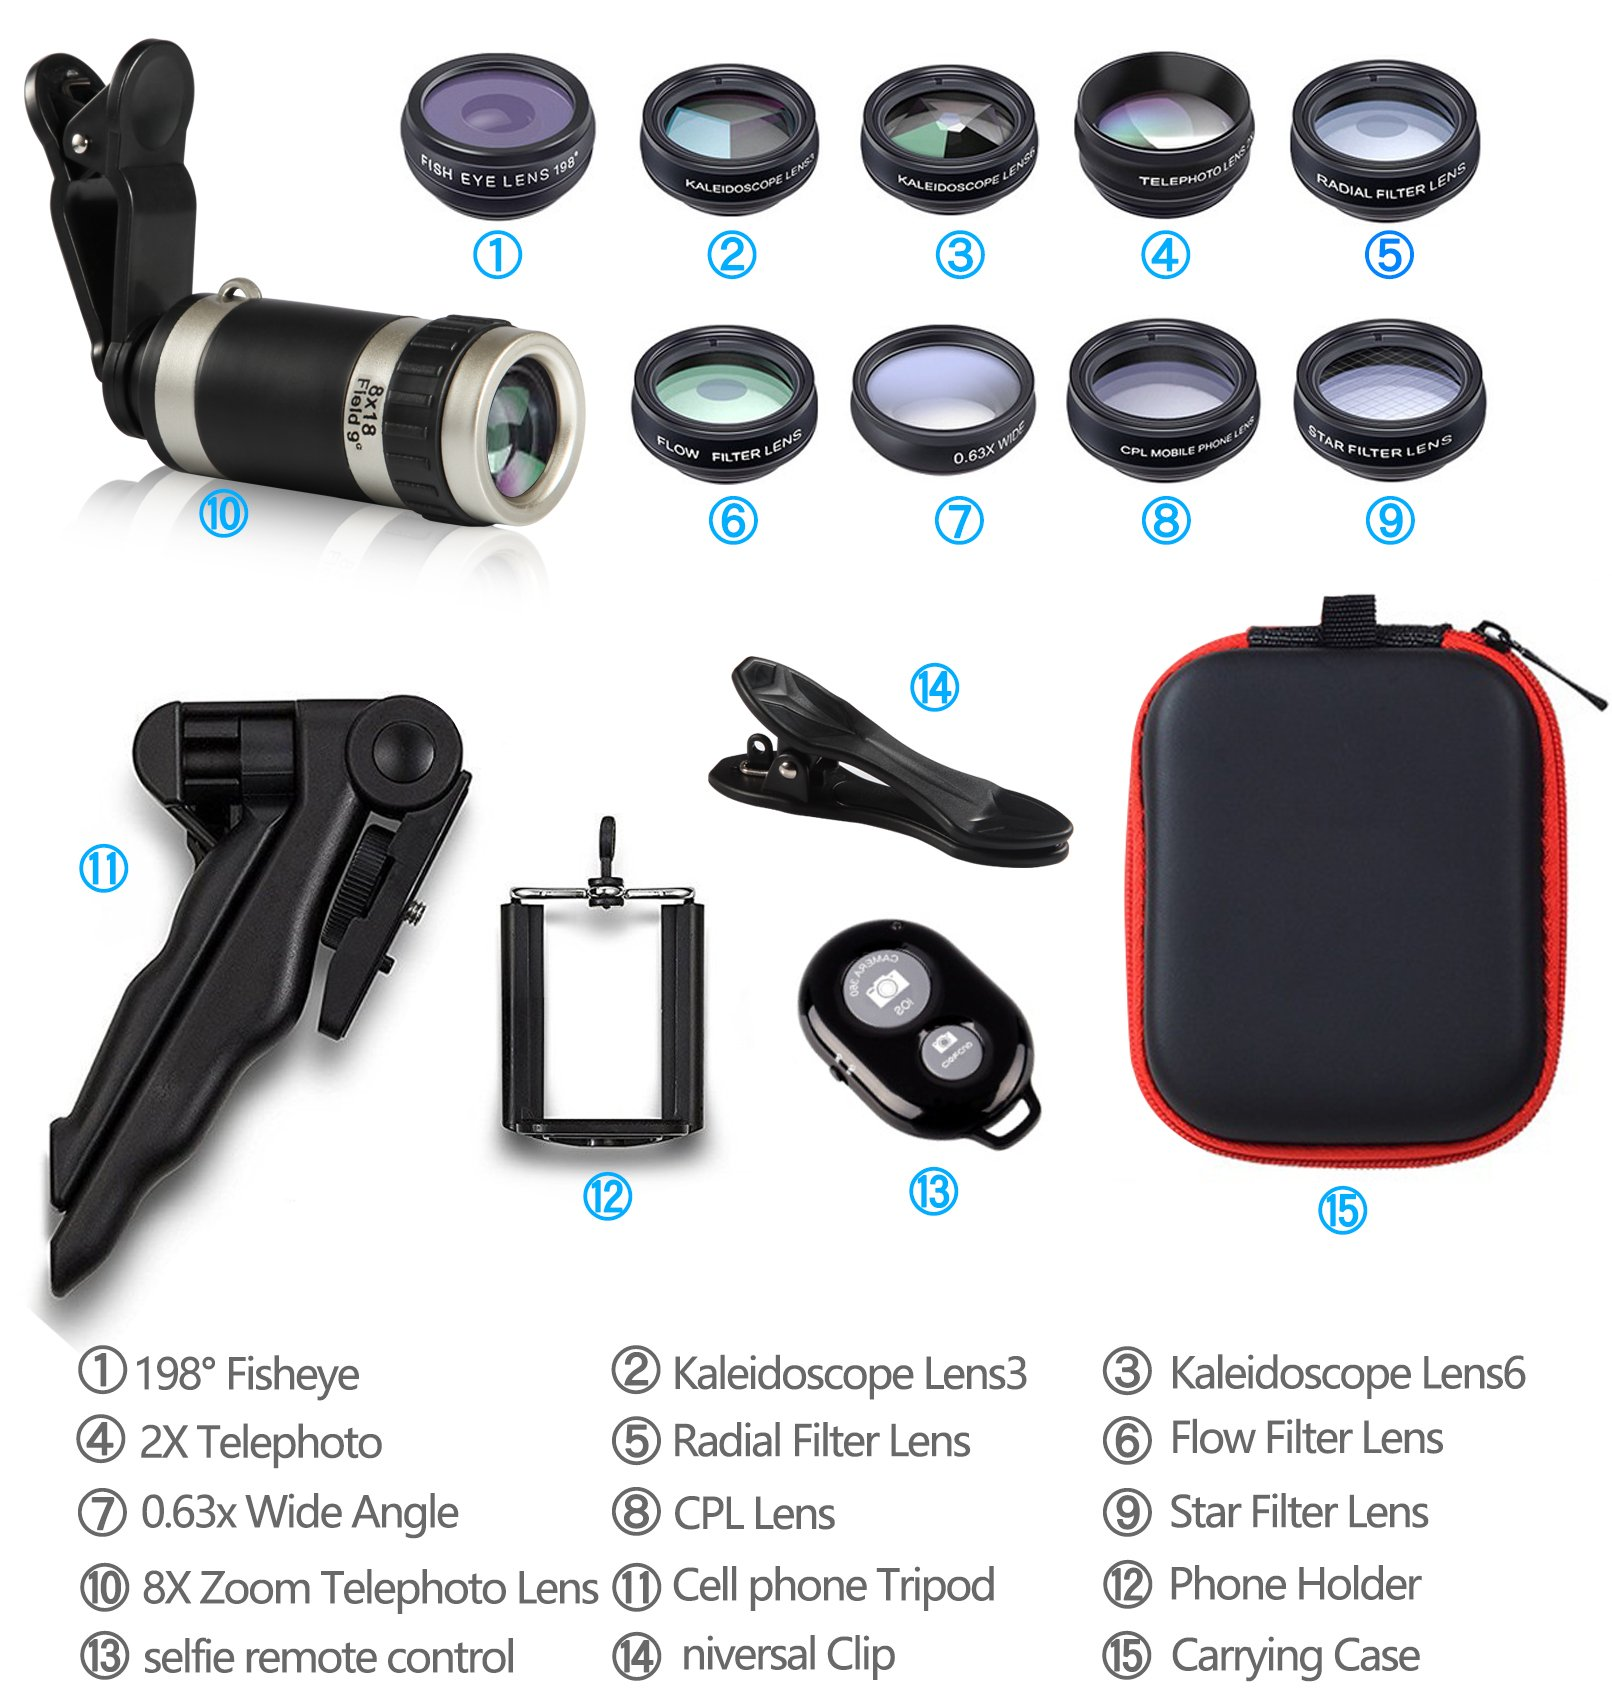 Cell Phone Camera Lens Kit by Ailuki with Professional Telephoto Lens,Wide Angle Lens+Macro Lens+Fisheye Lens, Selfie Remote Control+Tripod for iPhone Samsung Galaxy Most of Smartphone and iPad by AILUKI (Image #7)